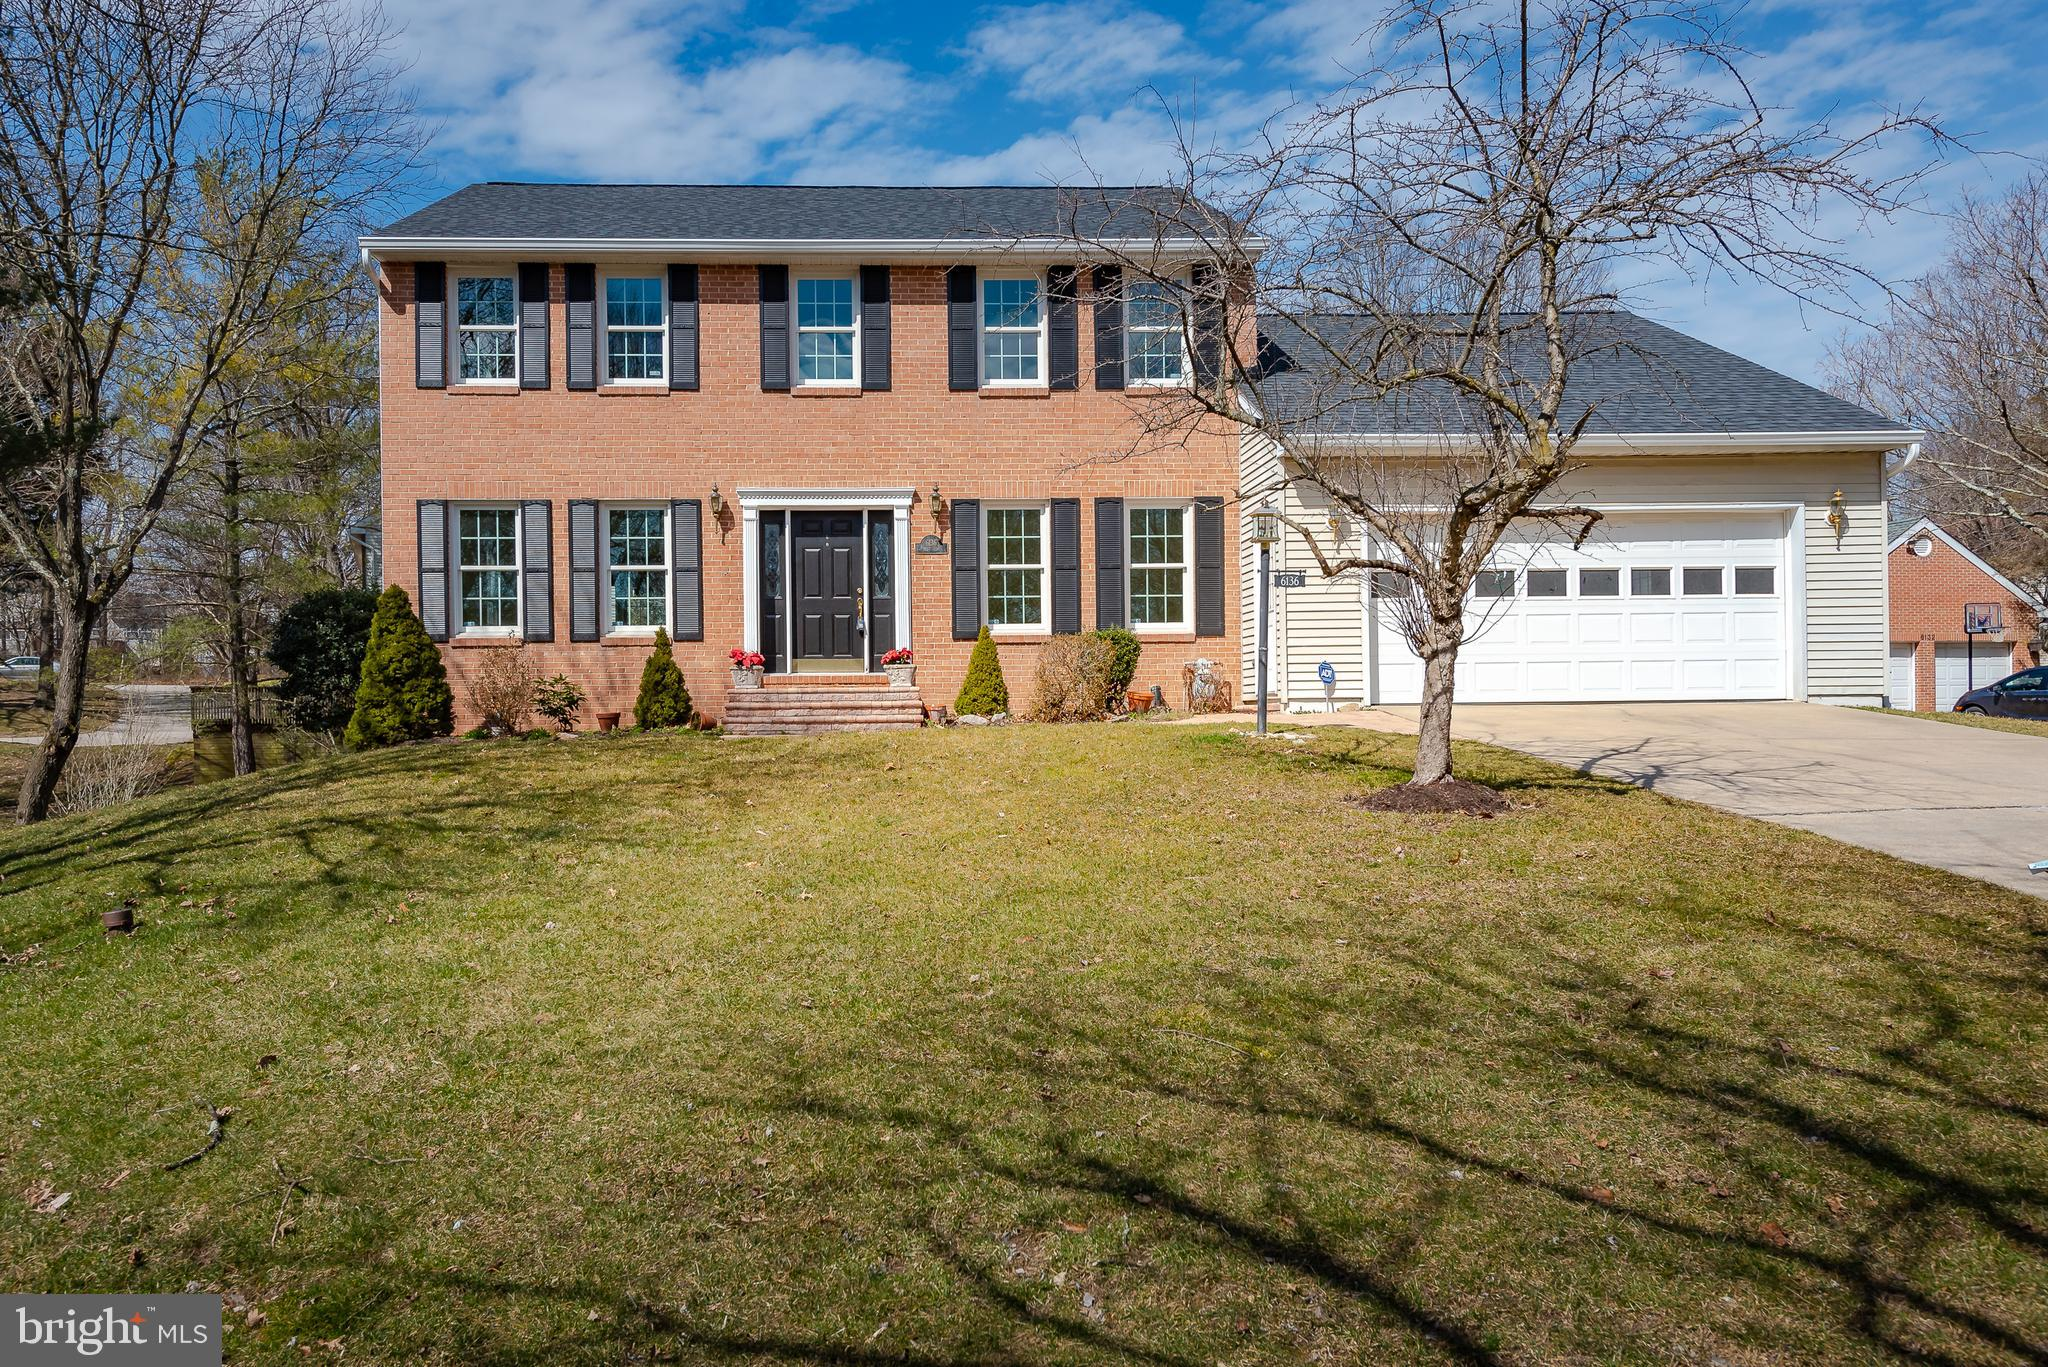 6136 NEST SIDE, COLUMBIA, MD 21045